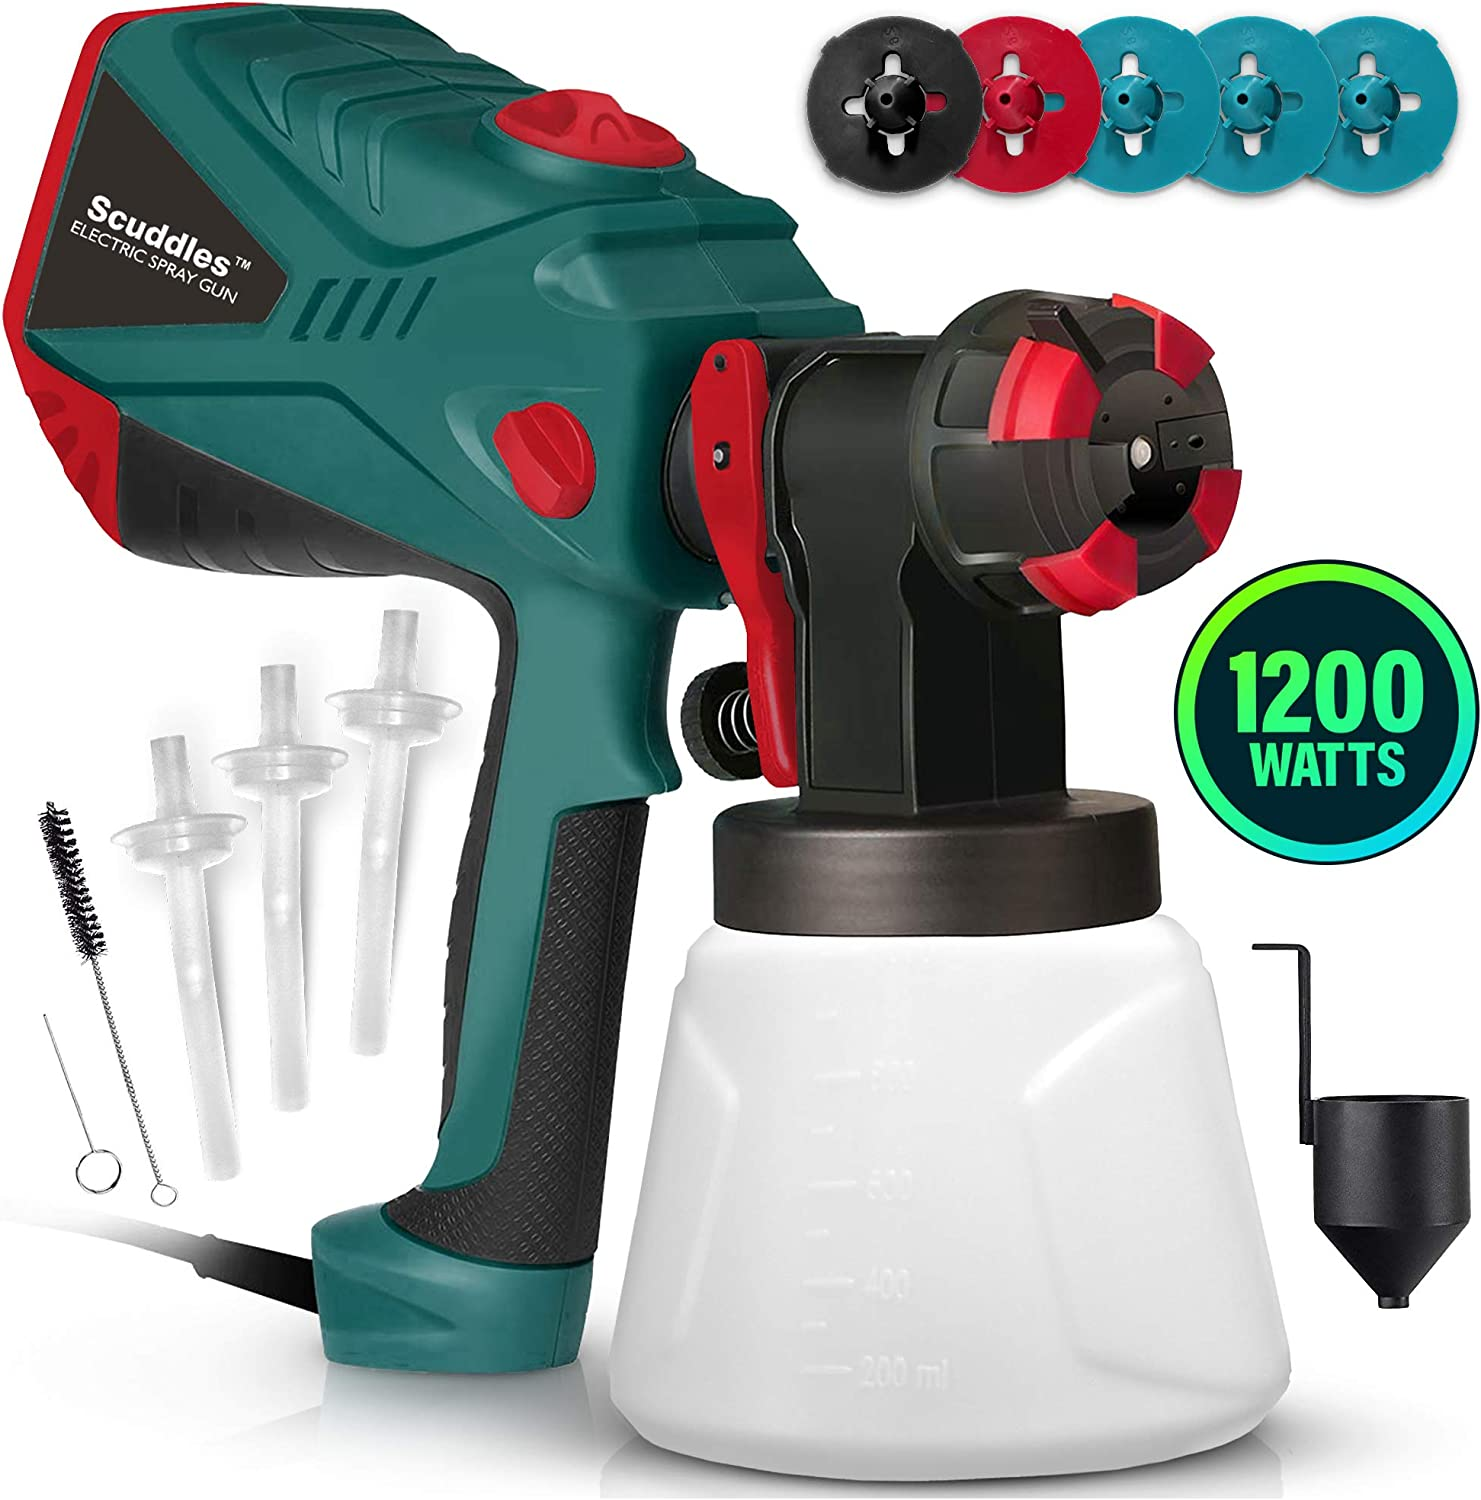 Top 5 Fence Stain Sprayers